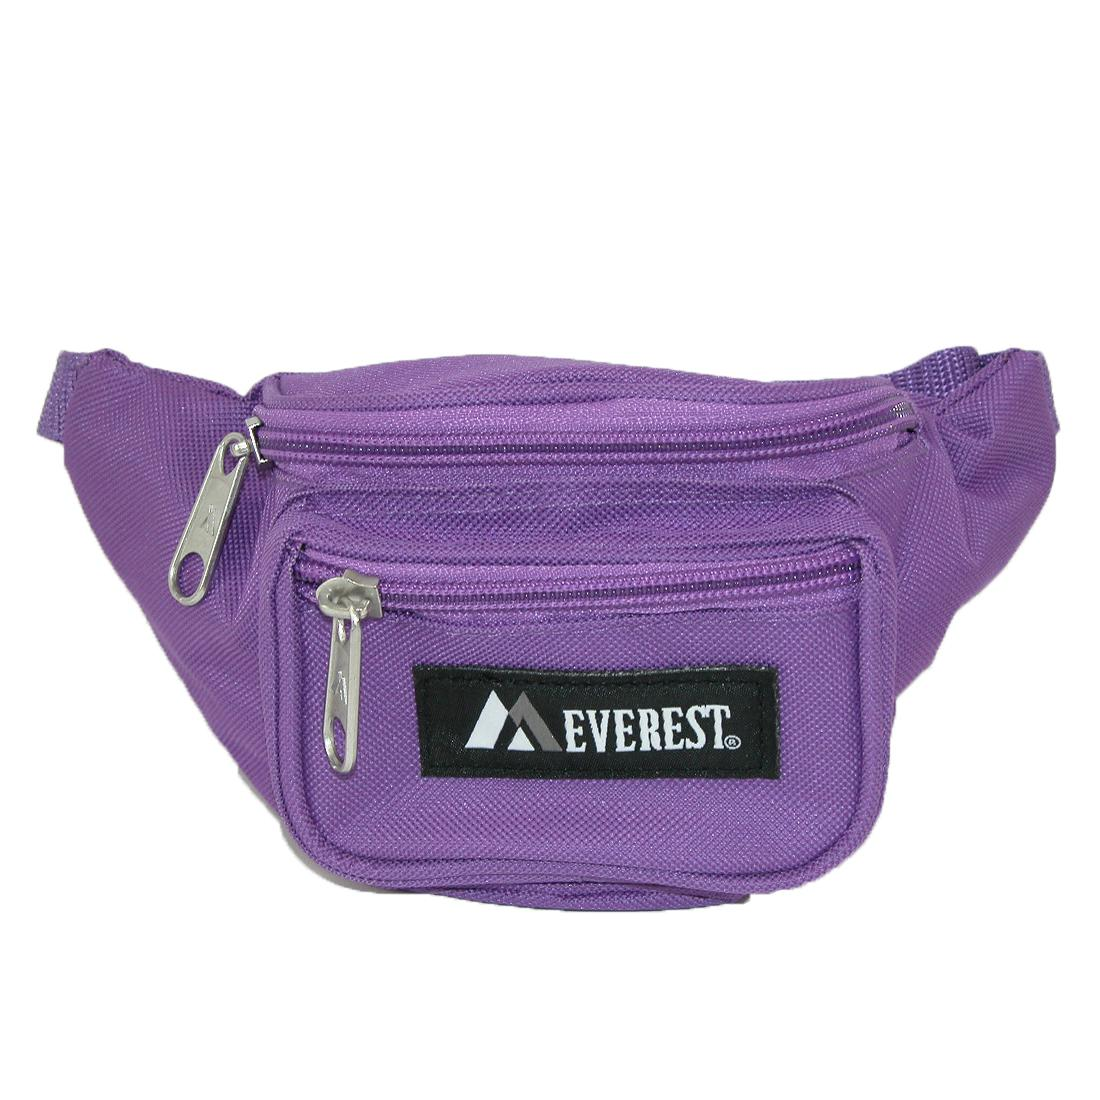 Everest Girls' Fabric Waist Pack Purse - Dark Purple one size (EV-GIRLS-DPL EV-GIRLS) photo